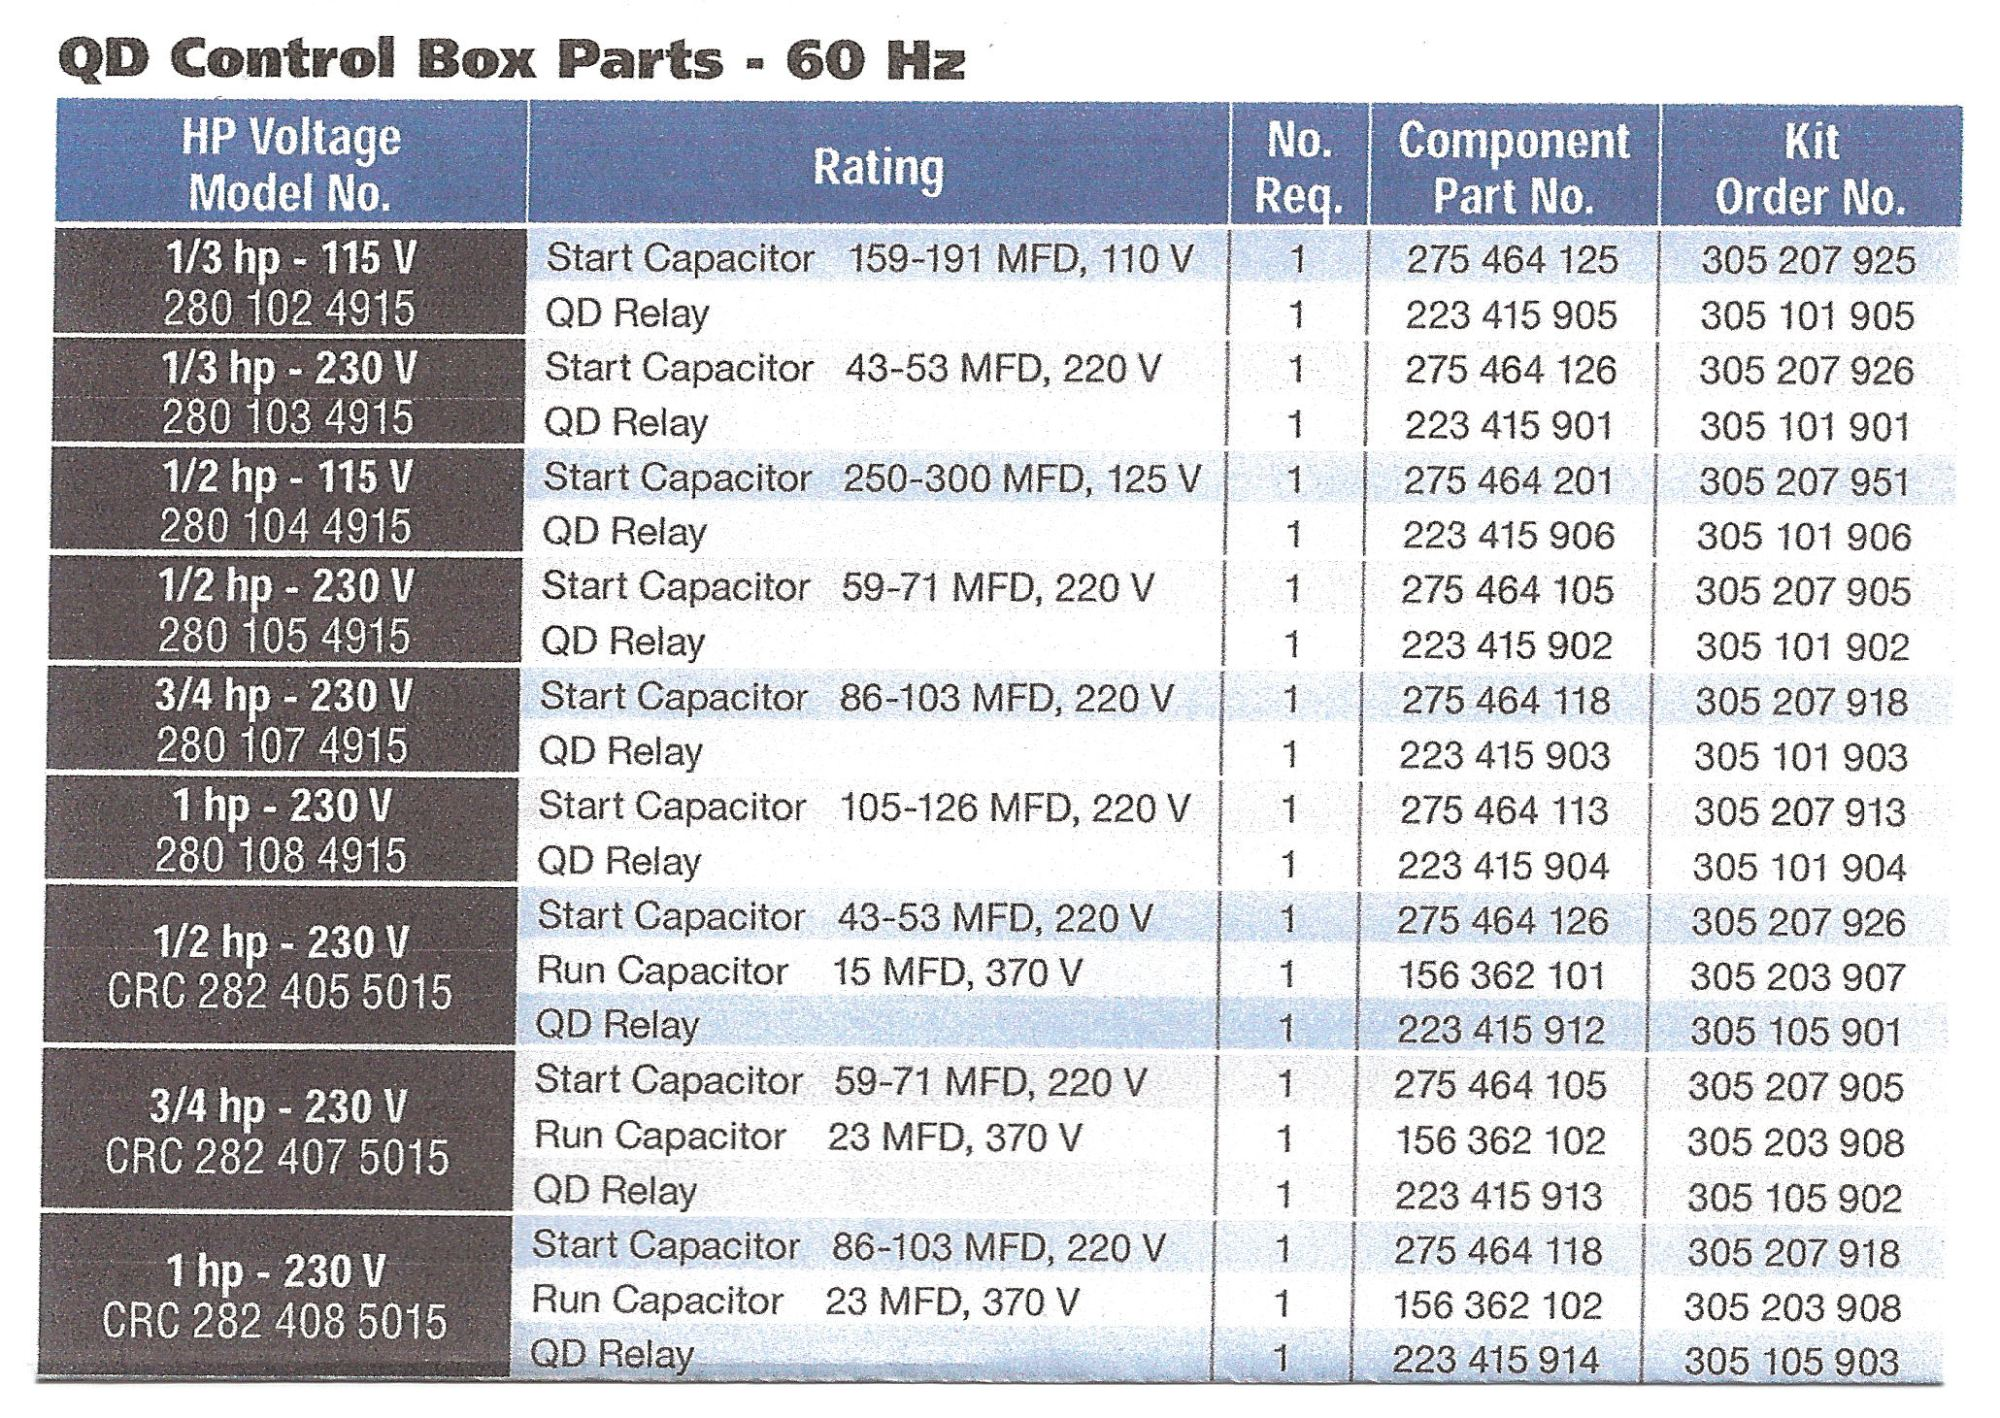 hight resolution of franklin qd control box parts breakdown